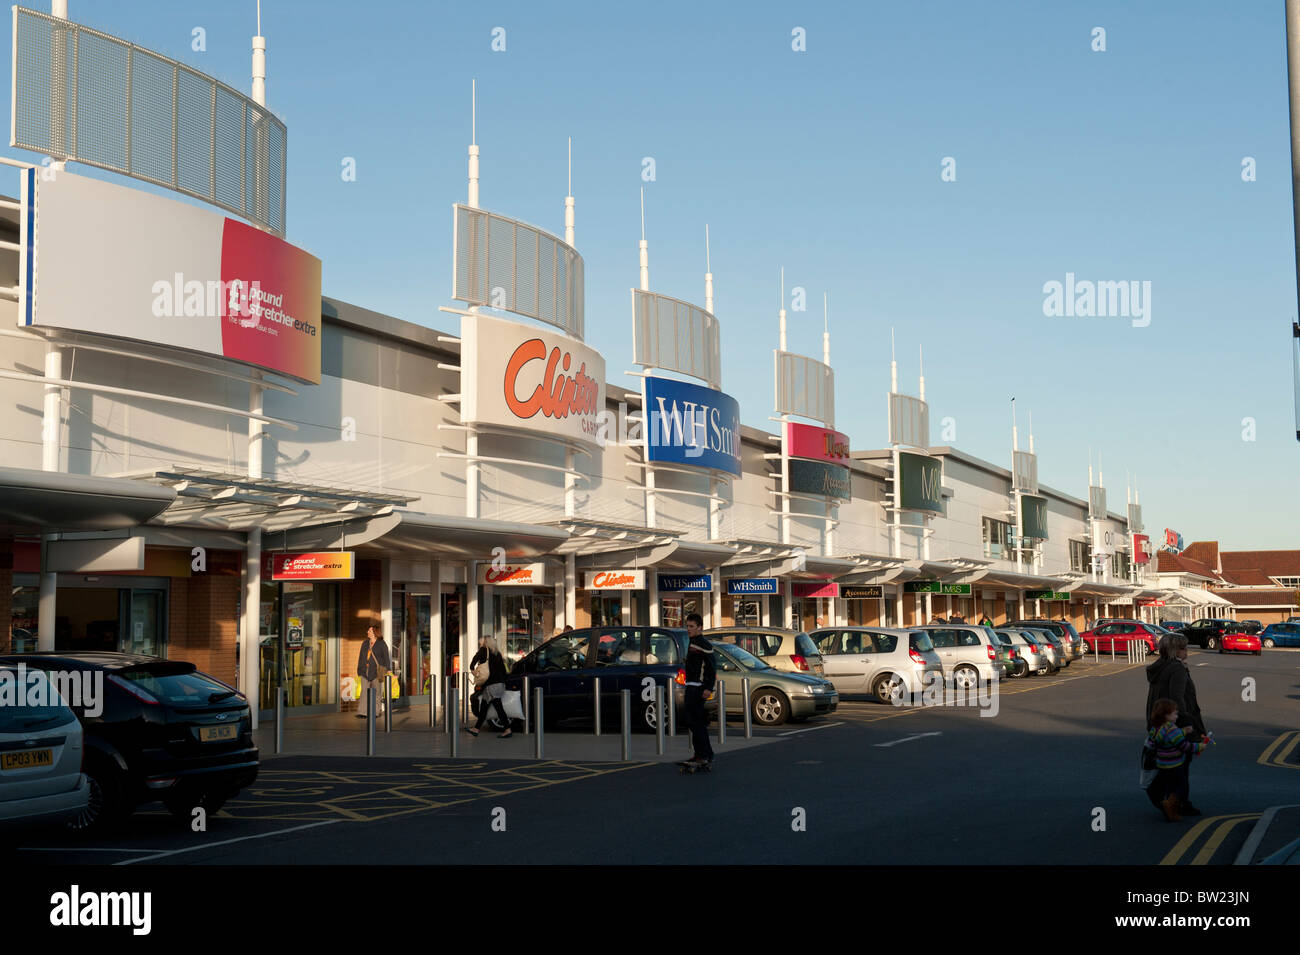 Trostre retail park out of town shopping mall Llanelli Wales UK - Stock Image